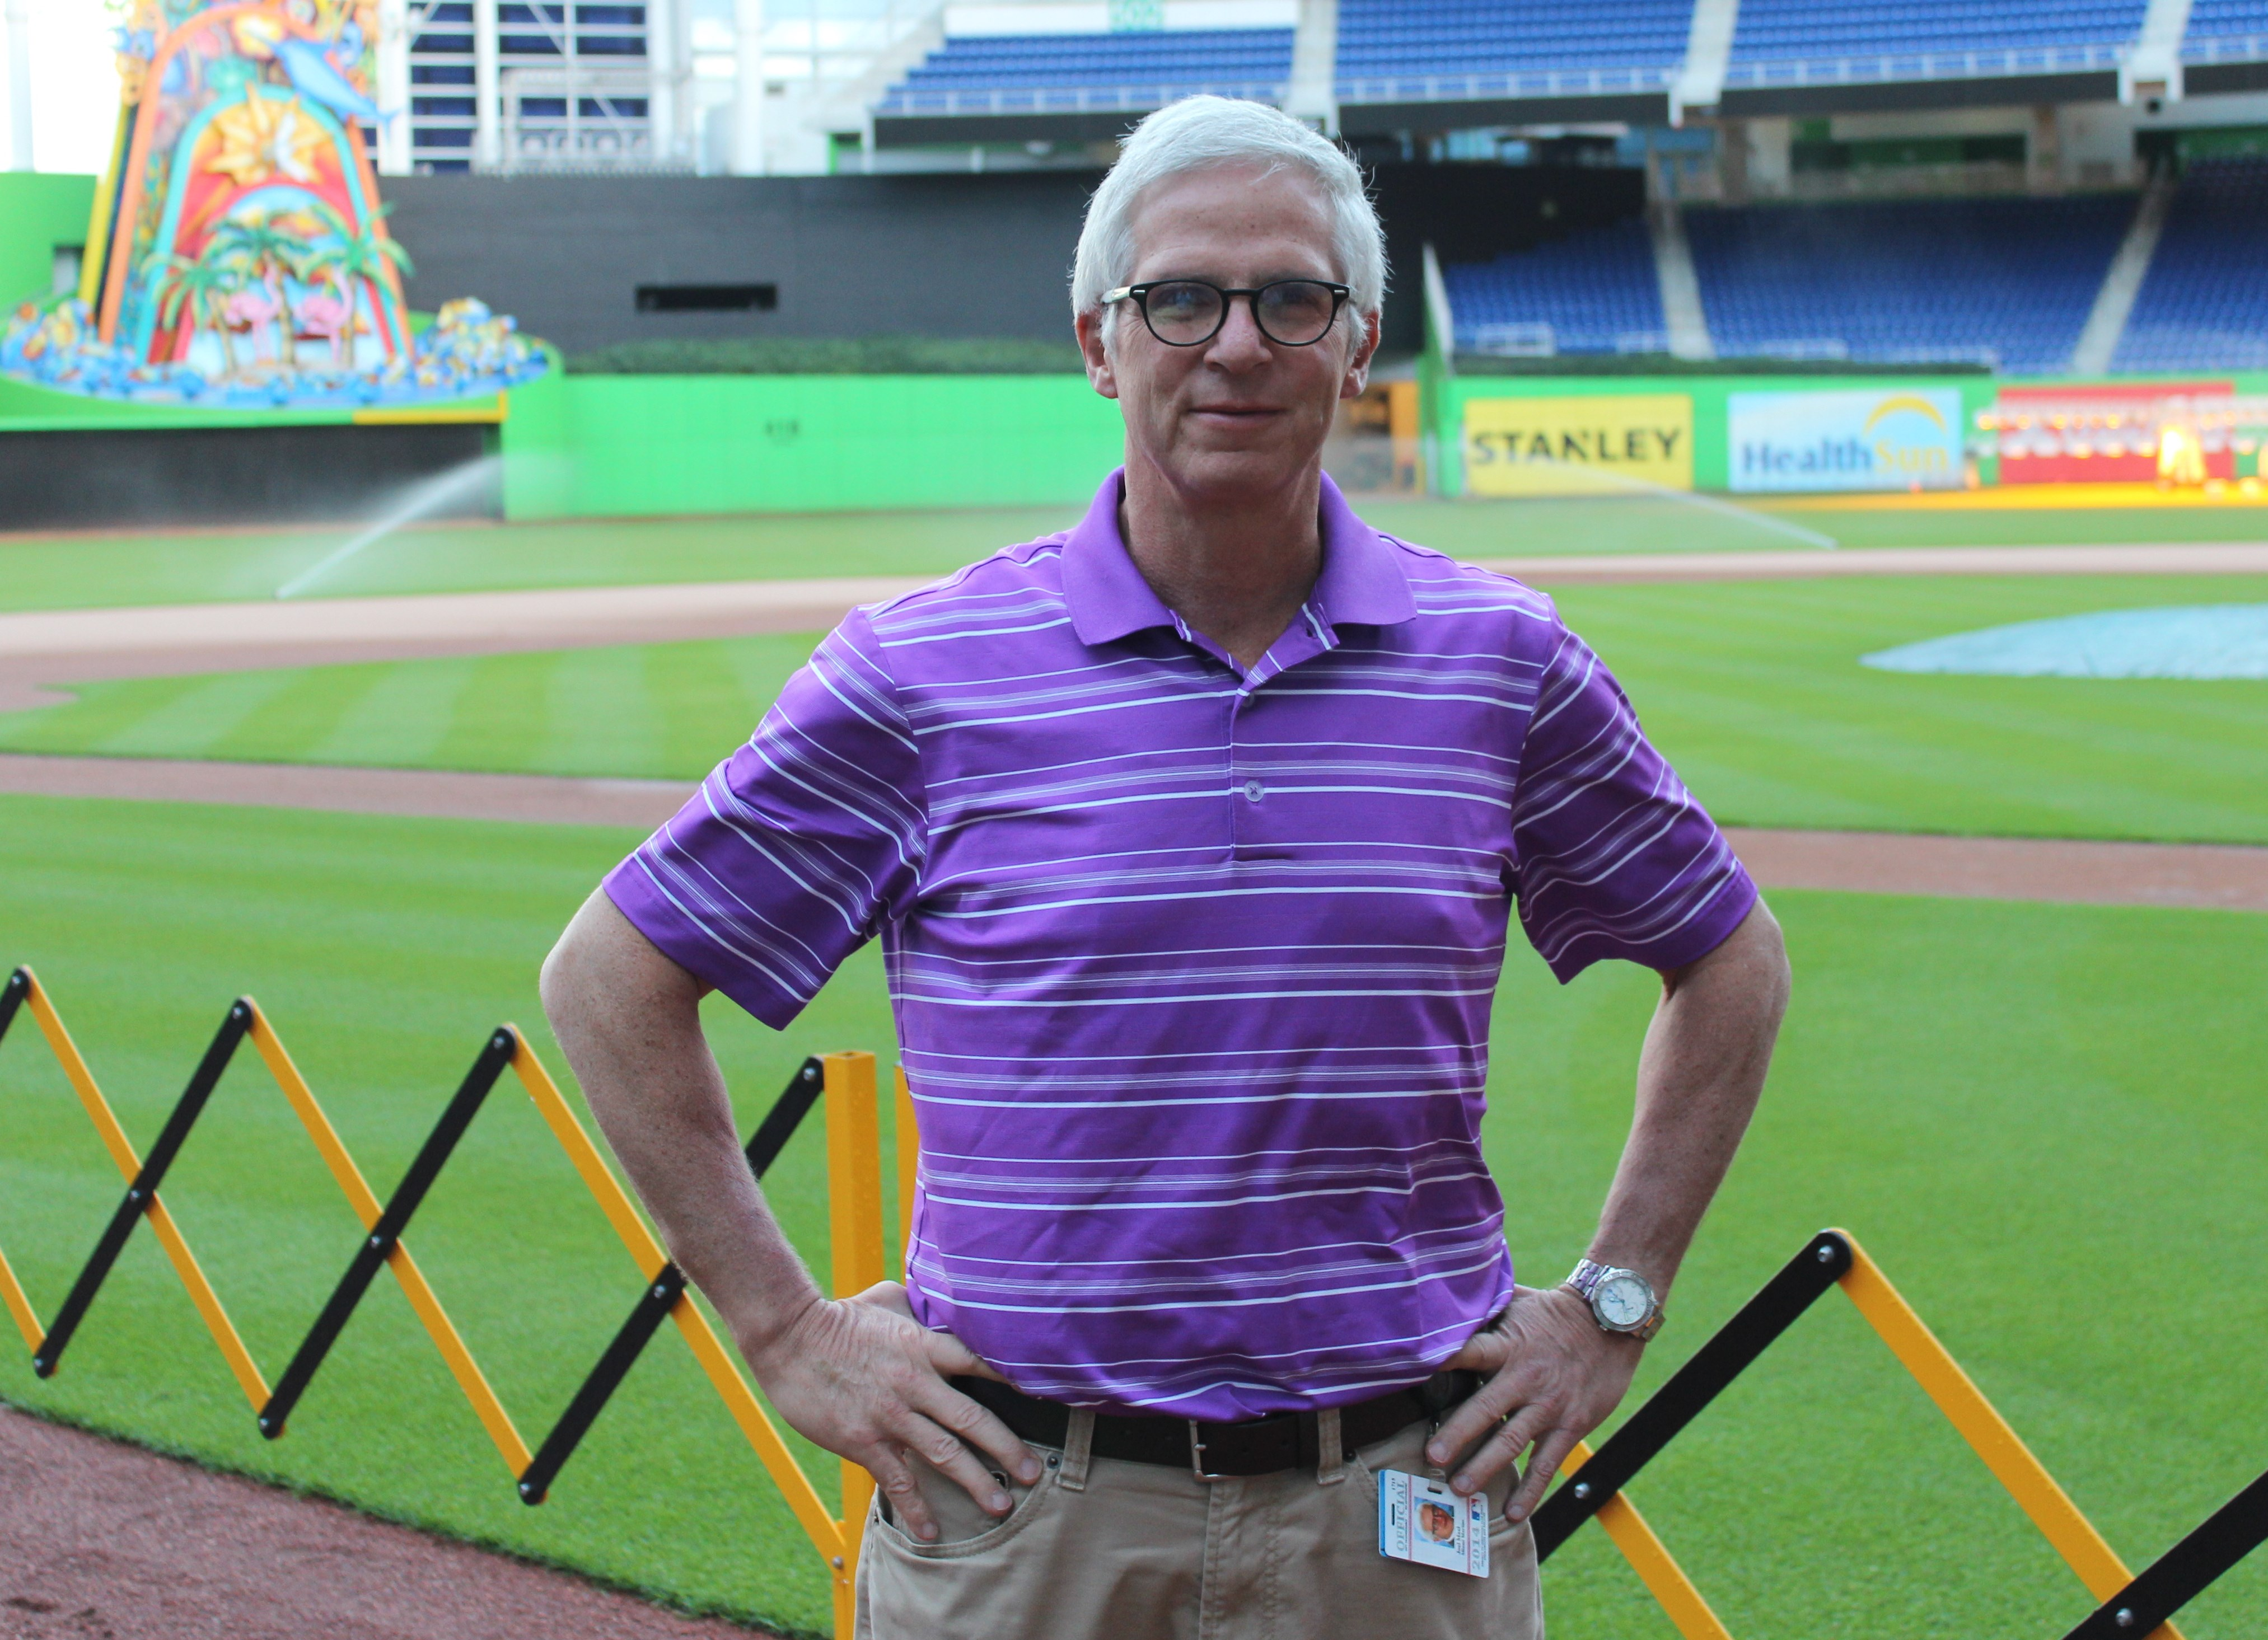 Joel Mael, seen at Marlins Park in Miami, sees long-term success for his club with its new money philosophy. (Hillel Kuttler)